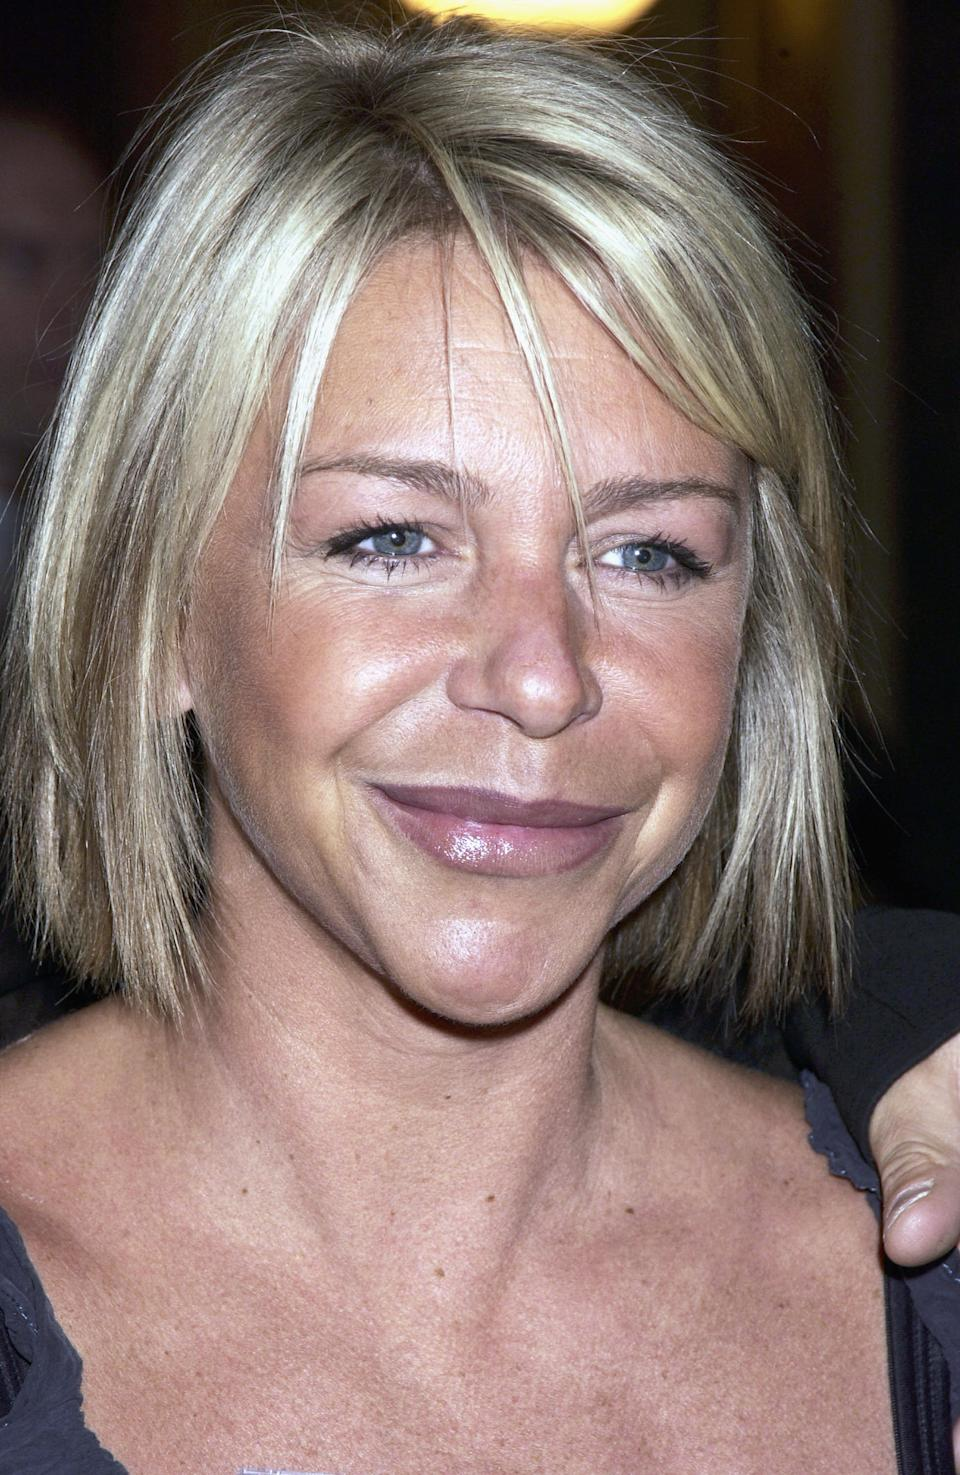 LONDON - APRIL 15:  British actress Leslie Ash arrives at the opening of the new Saatchi Gallery in County Hall with work by a range of artists including Damien Hirst and Tracey Emin on April 15, 2003 in London. (Photo by Dave Benett/Getty Images)